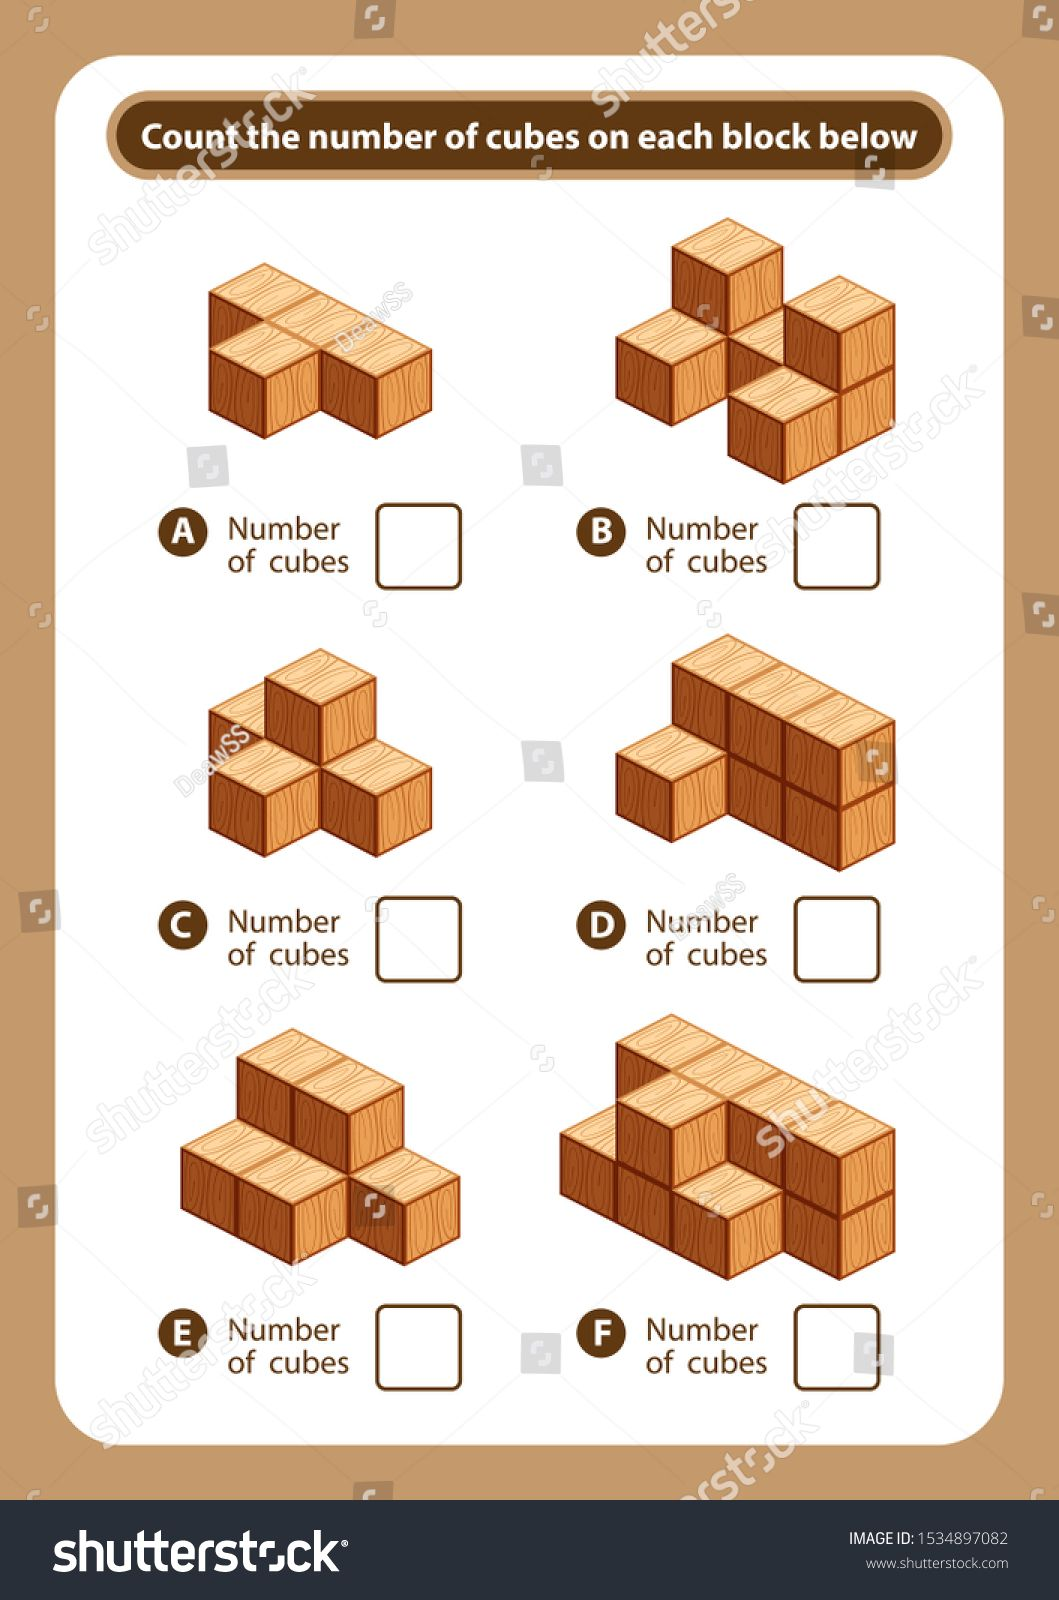 Articles Sheet Count The Number Of Cubes On Each Block Kids Activity Sheet F Activity Sheets For Kids Fun Worksheets For Kids Visual Discrimination Worksheets [ 1600 x 1059 Pixel ]